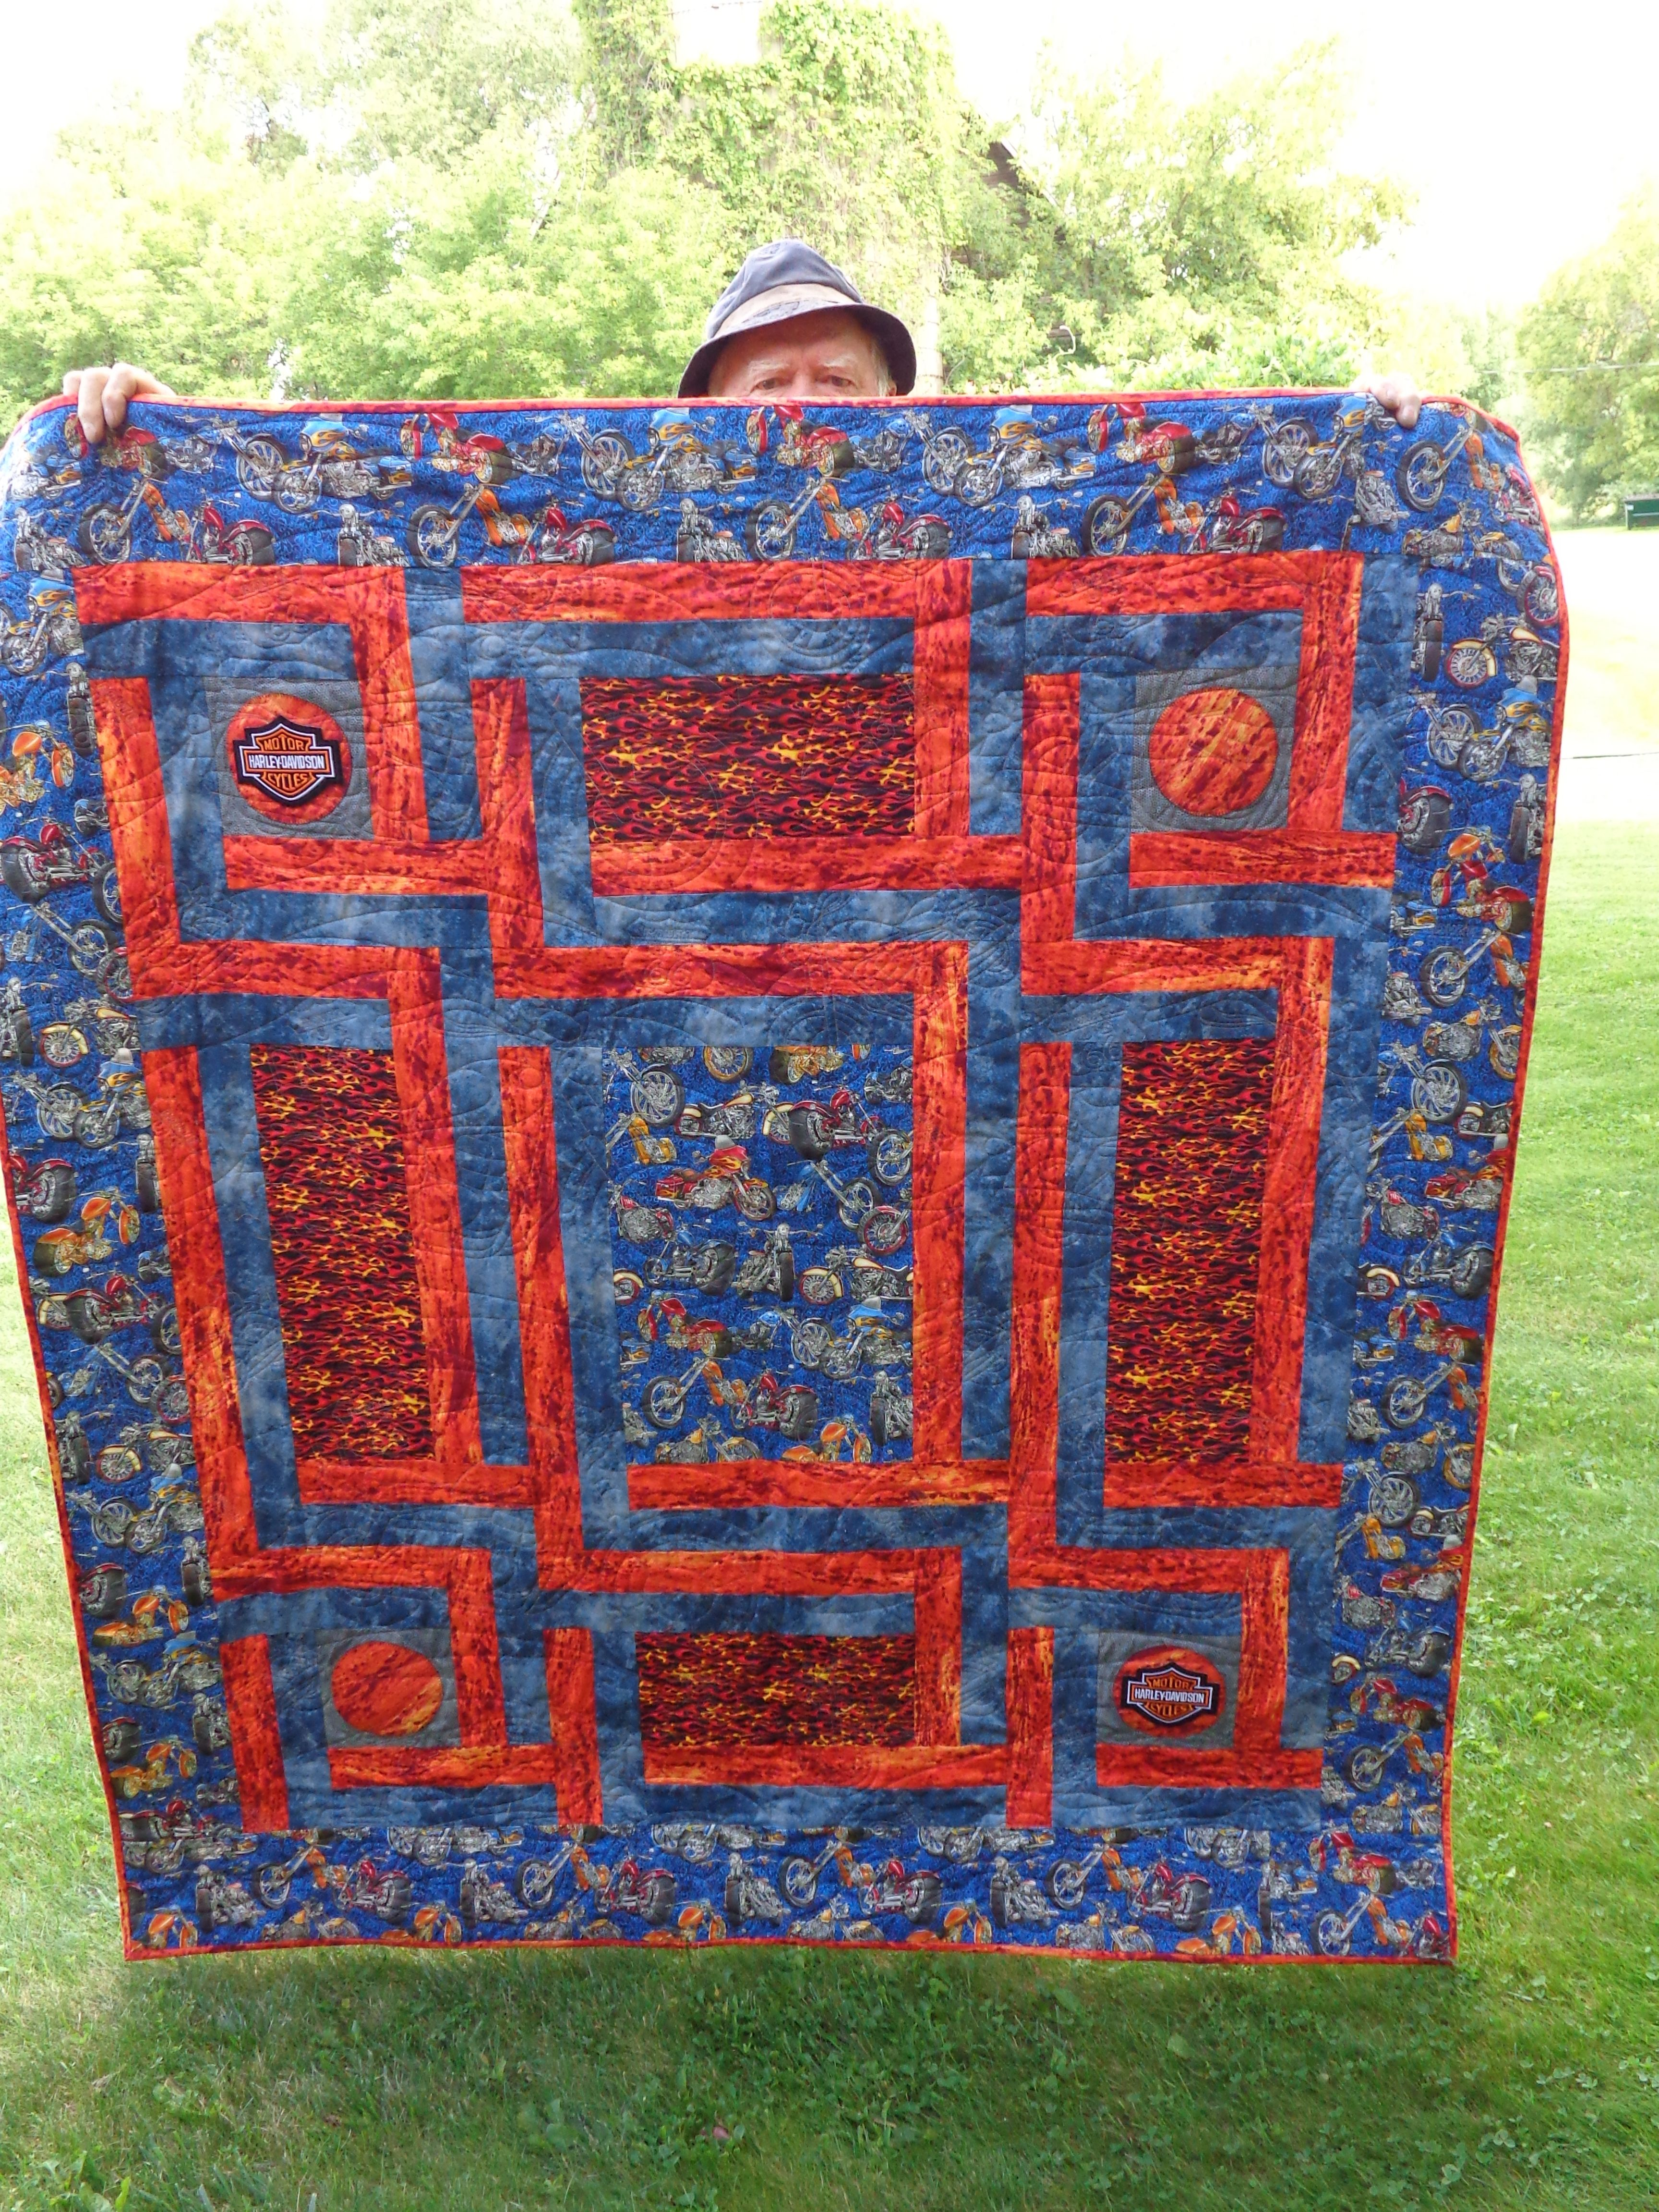 I made this quilted throw for a cancer benefit, it had motorcycle ... : motorcycle quilt pattern - Adamdwight.com